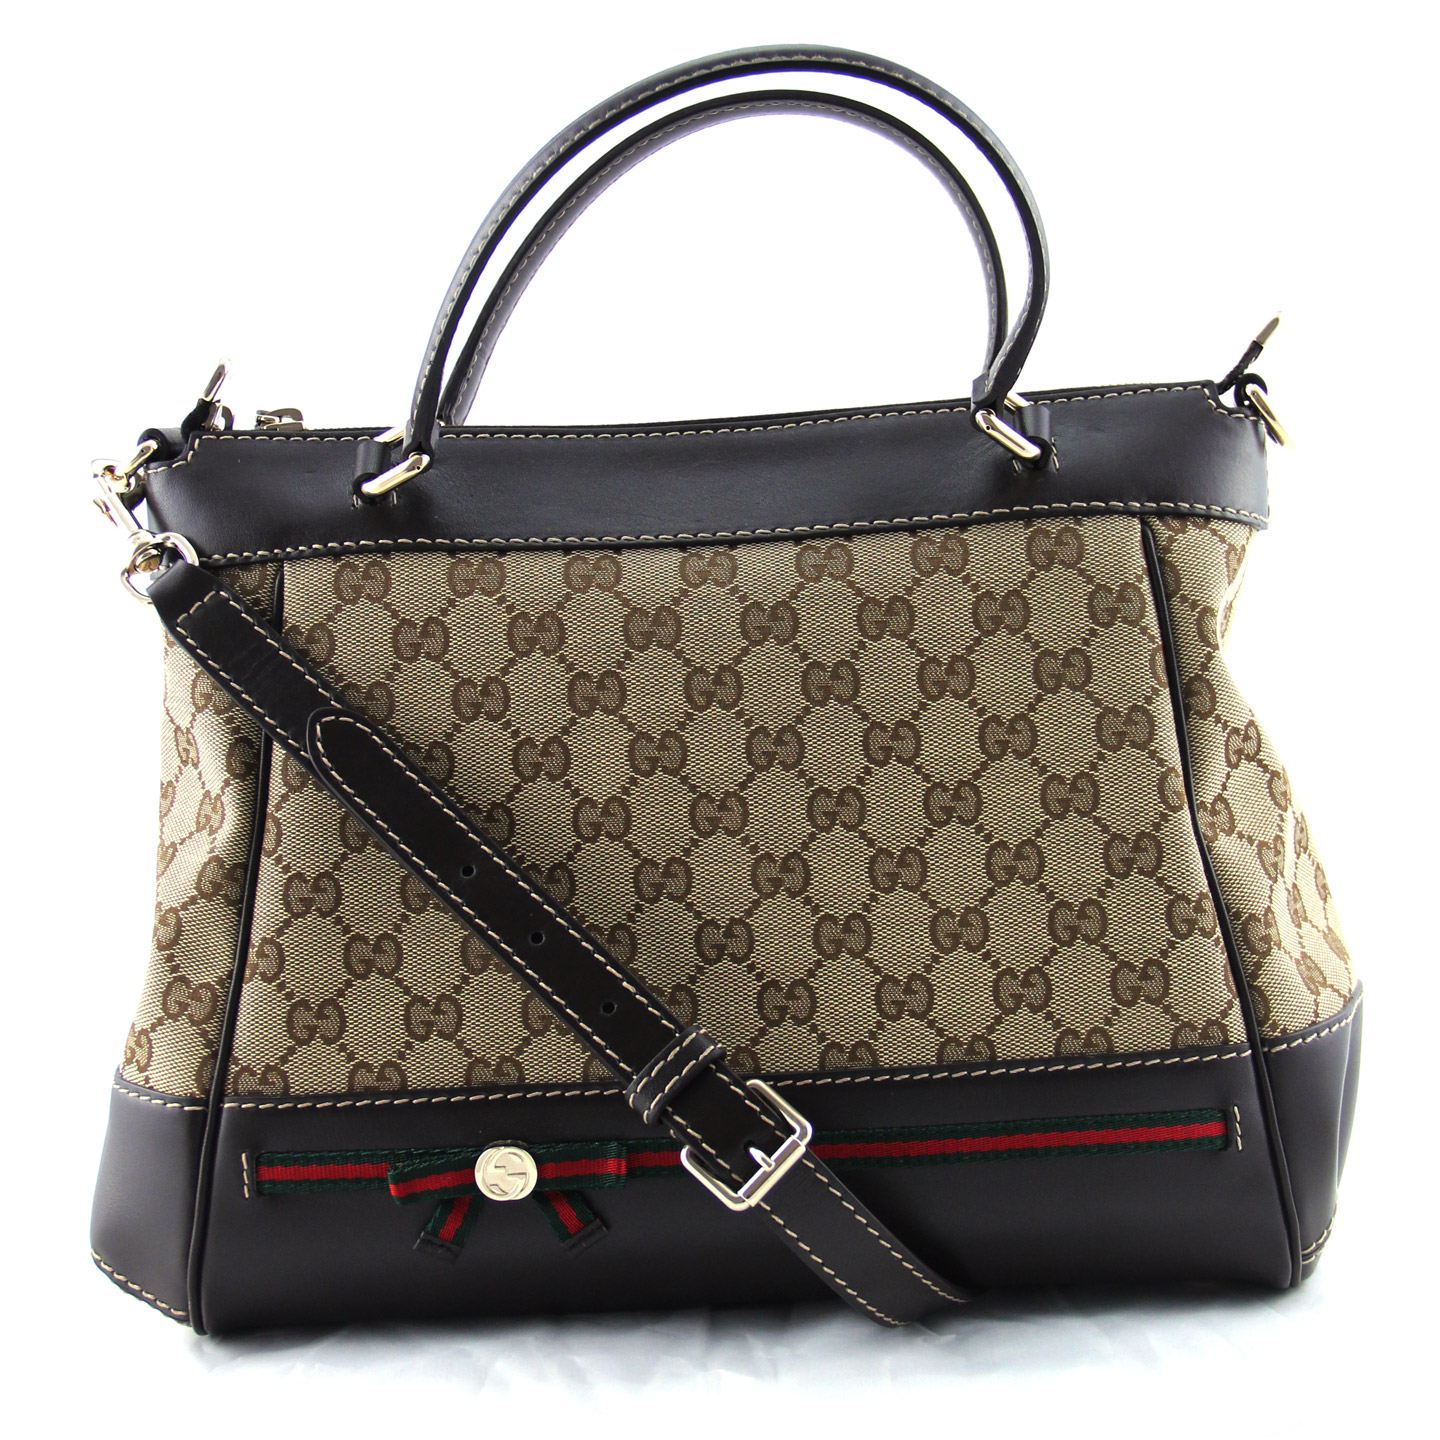 9ee1b04f4359 Pawn Shops That Buy Designer Bags | Stanford Center for Opportunity ...